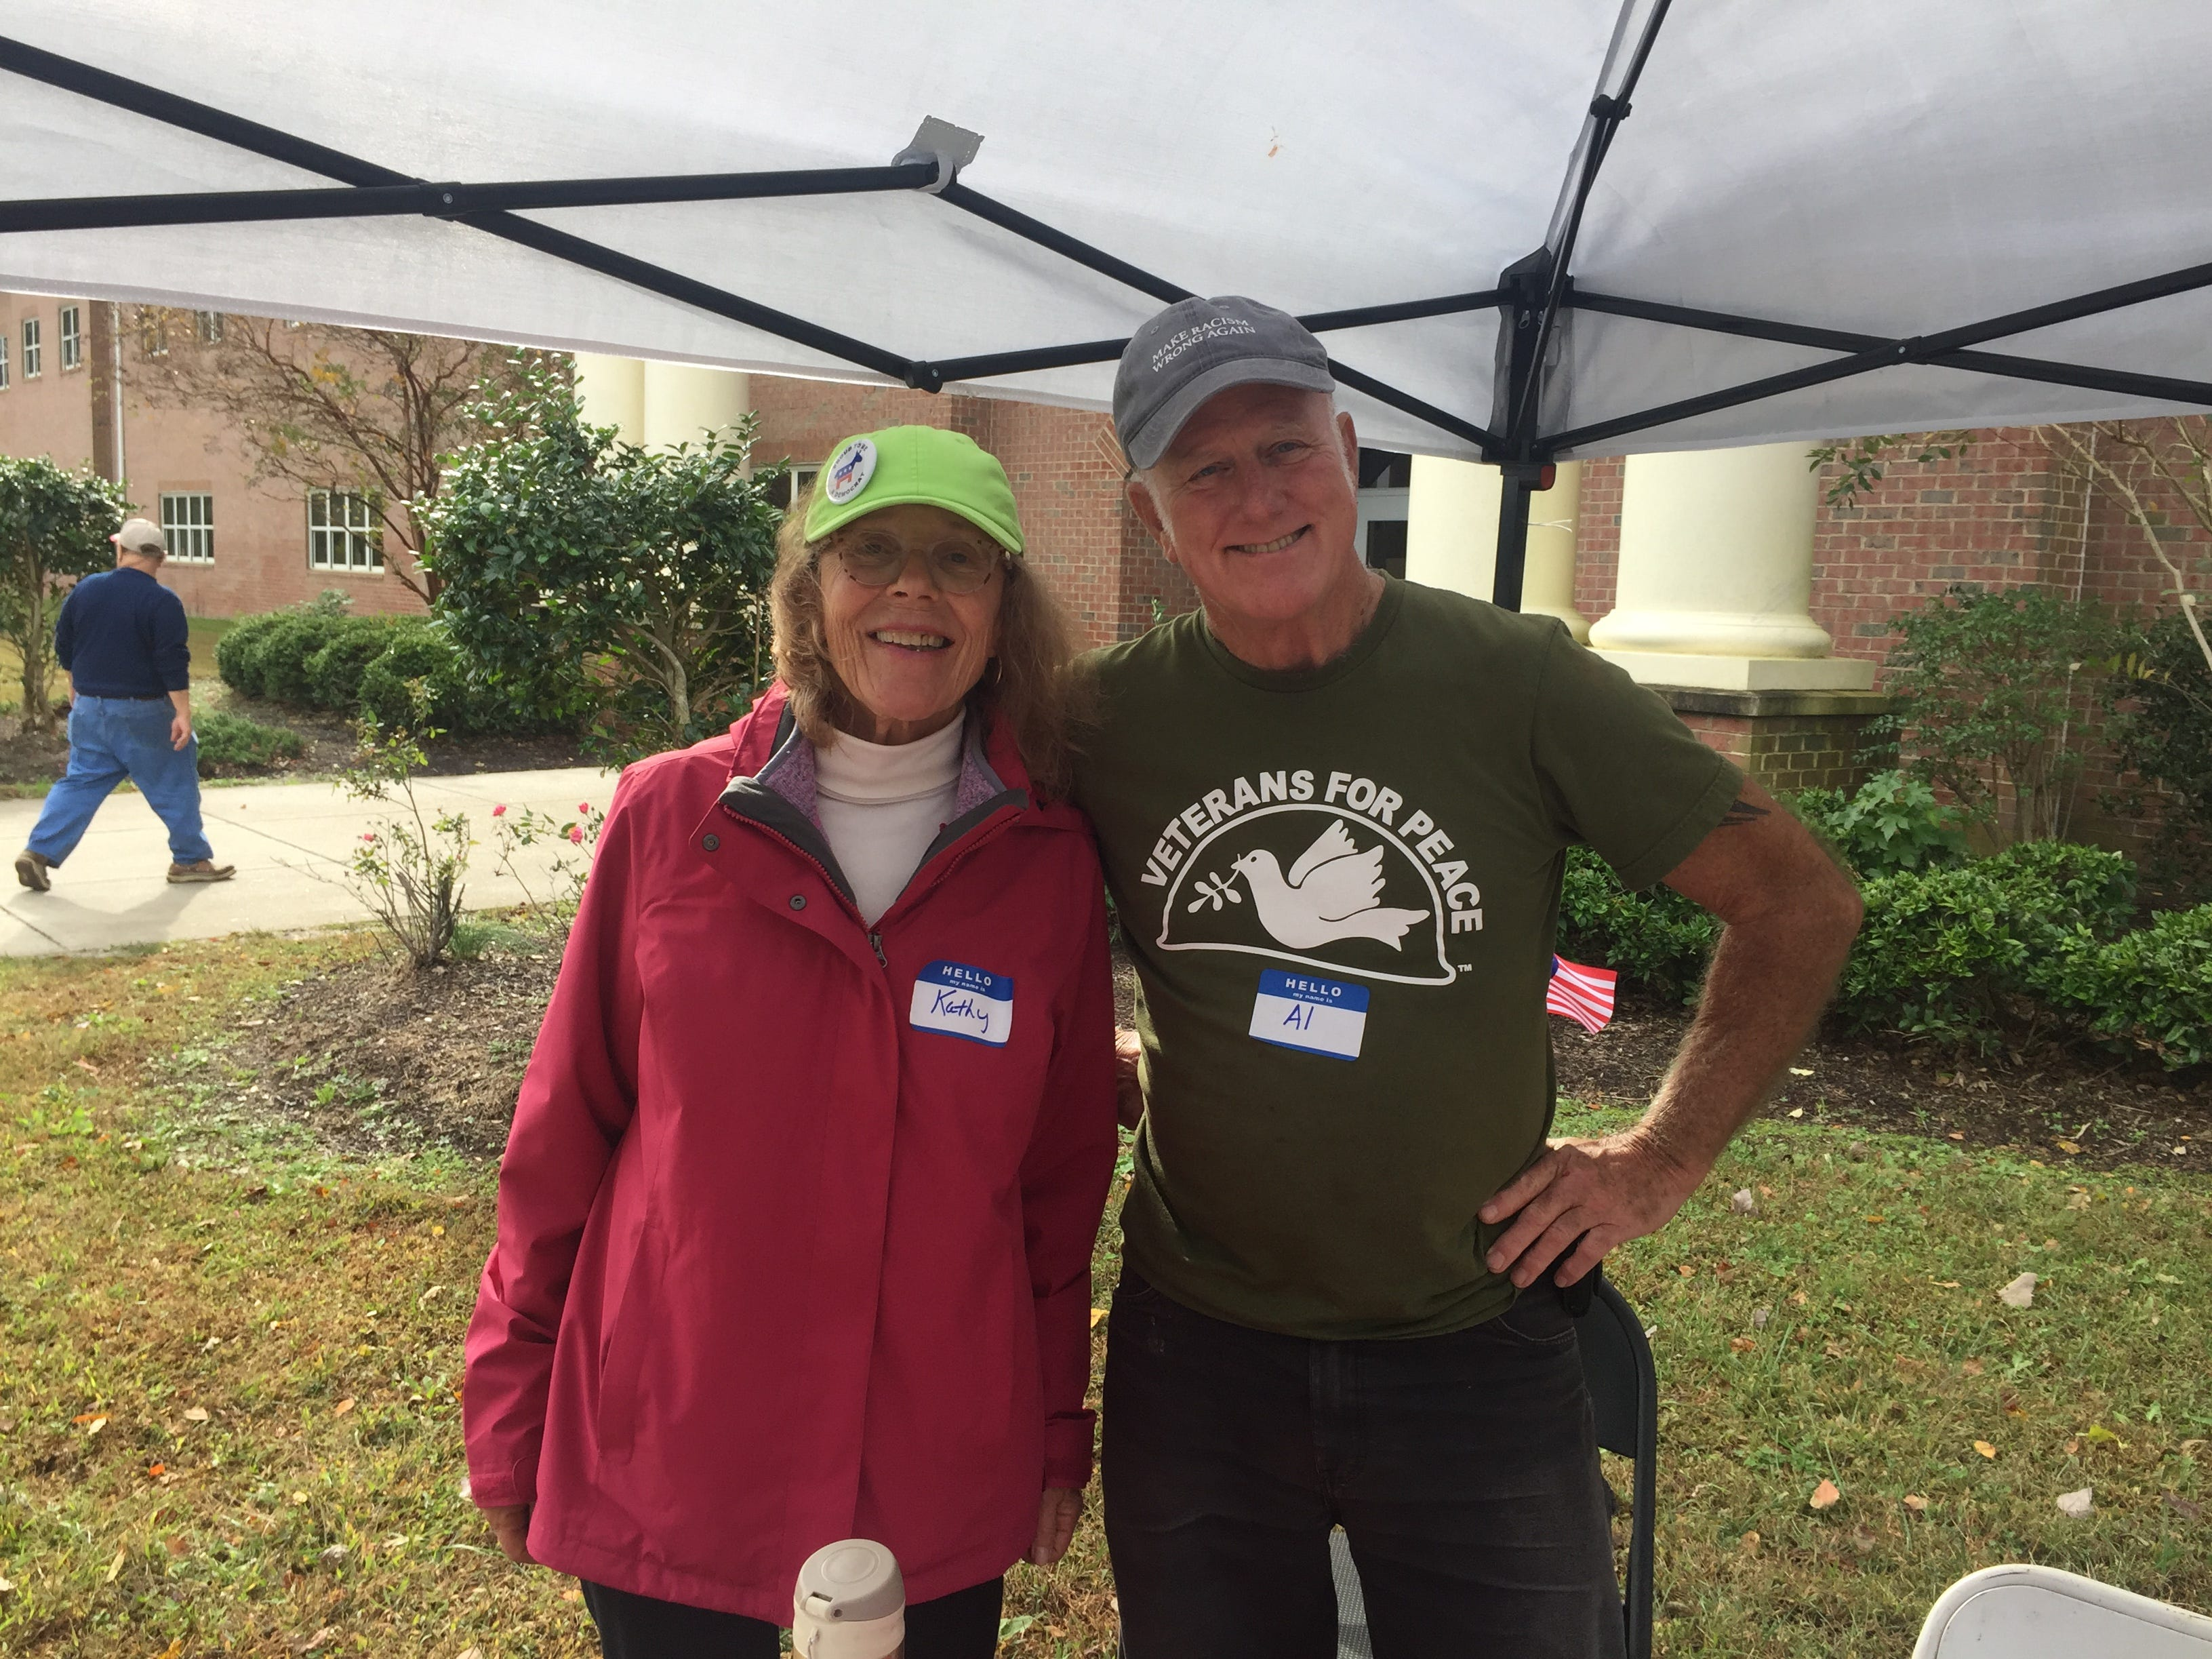 Volunteers Kathy Boyd and Al McKegg stand at the  Democratic candidates table outside the polling place at Nandua Middle School in Onley, Virginia on Election Day, Tuesday, Nov. 6, 2018.